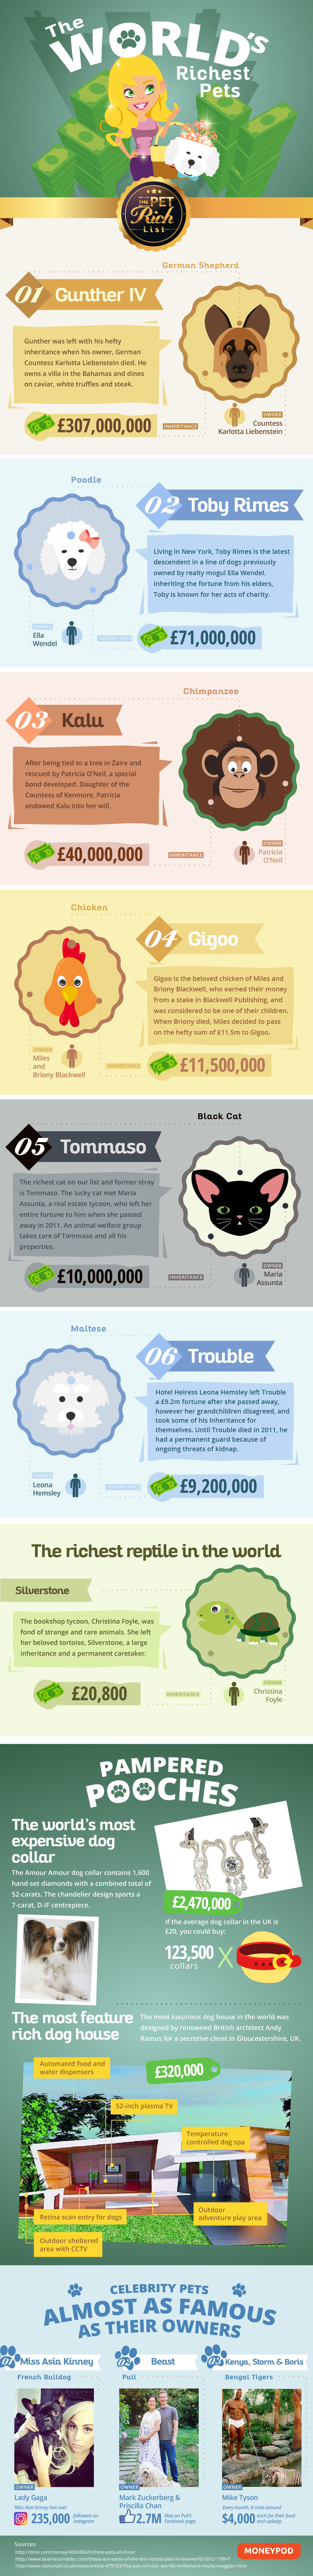 The World's Richest Pets